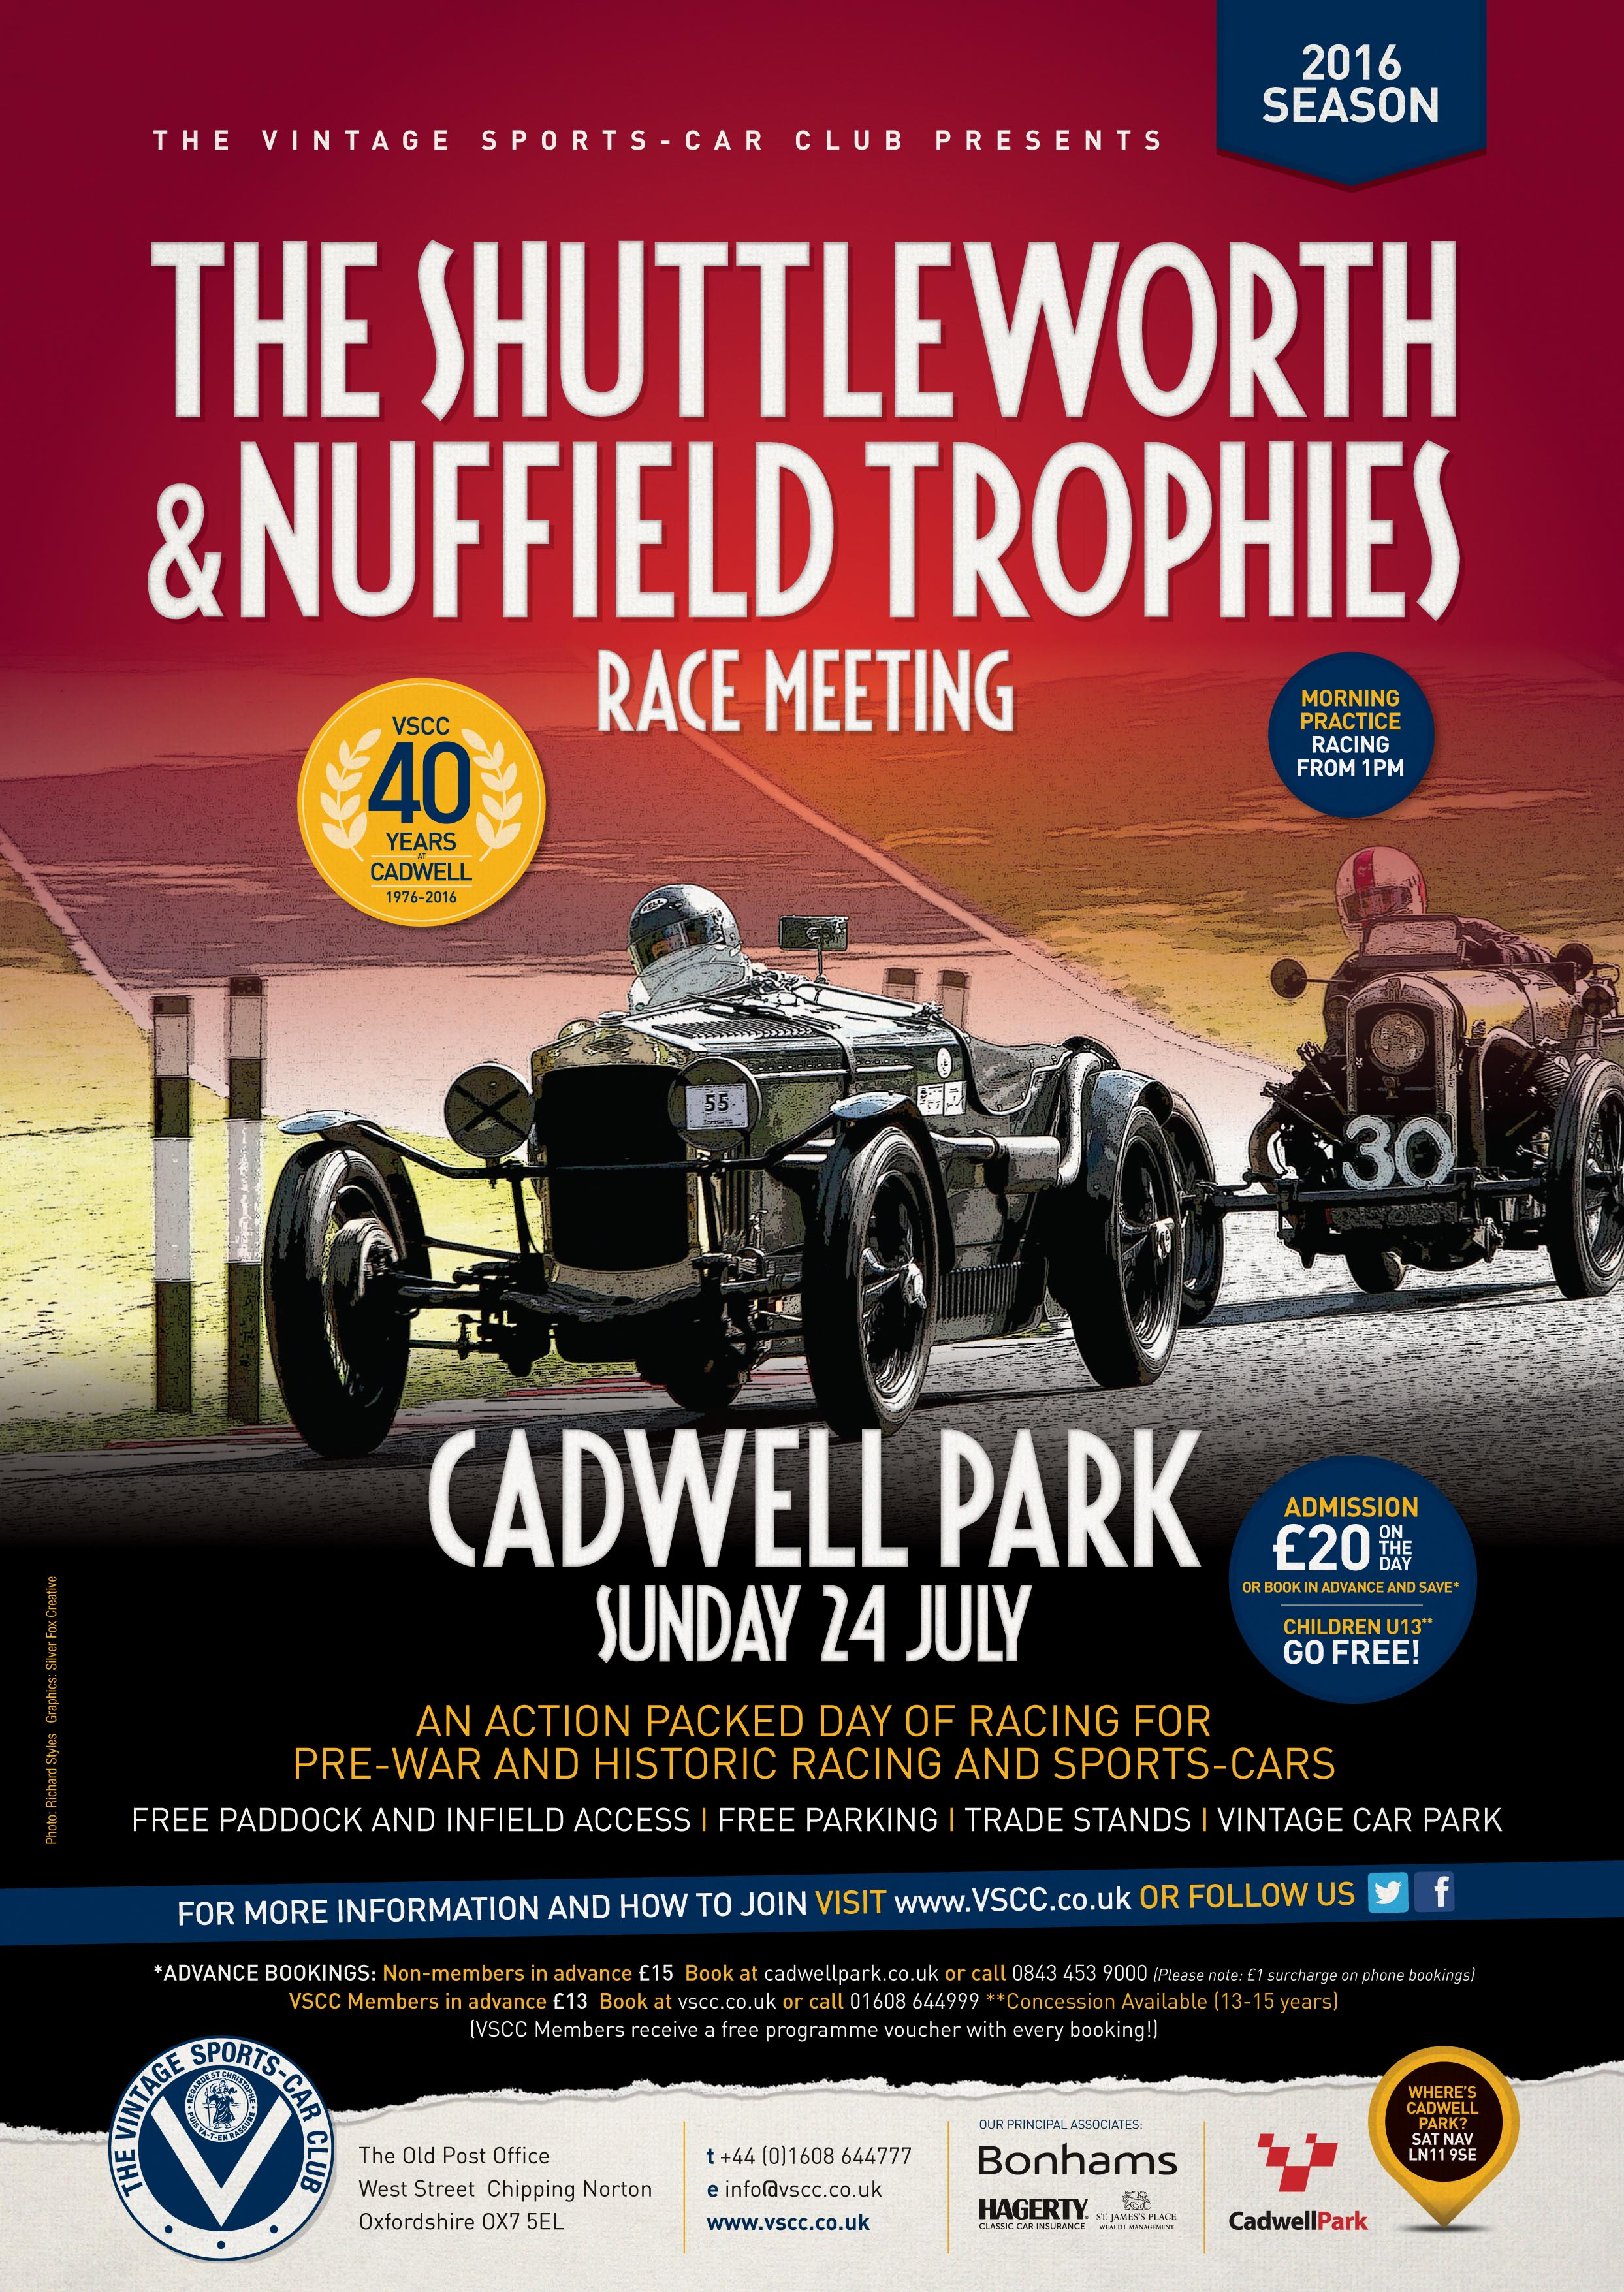 VSCC Cadwell Park – Coming This Weekend! cover